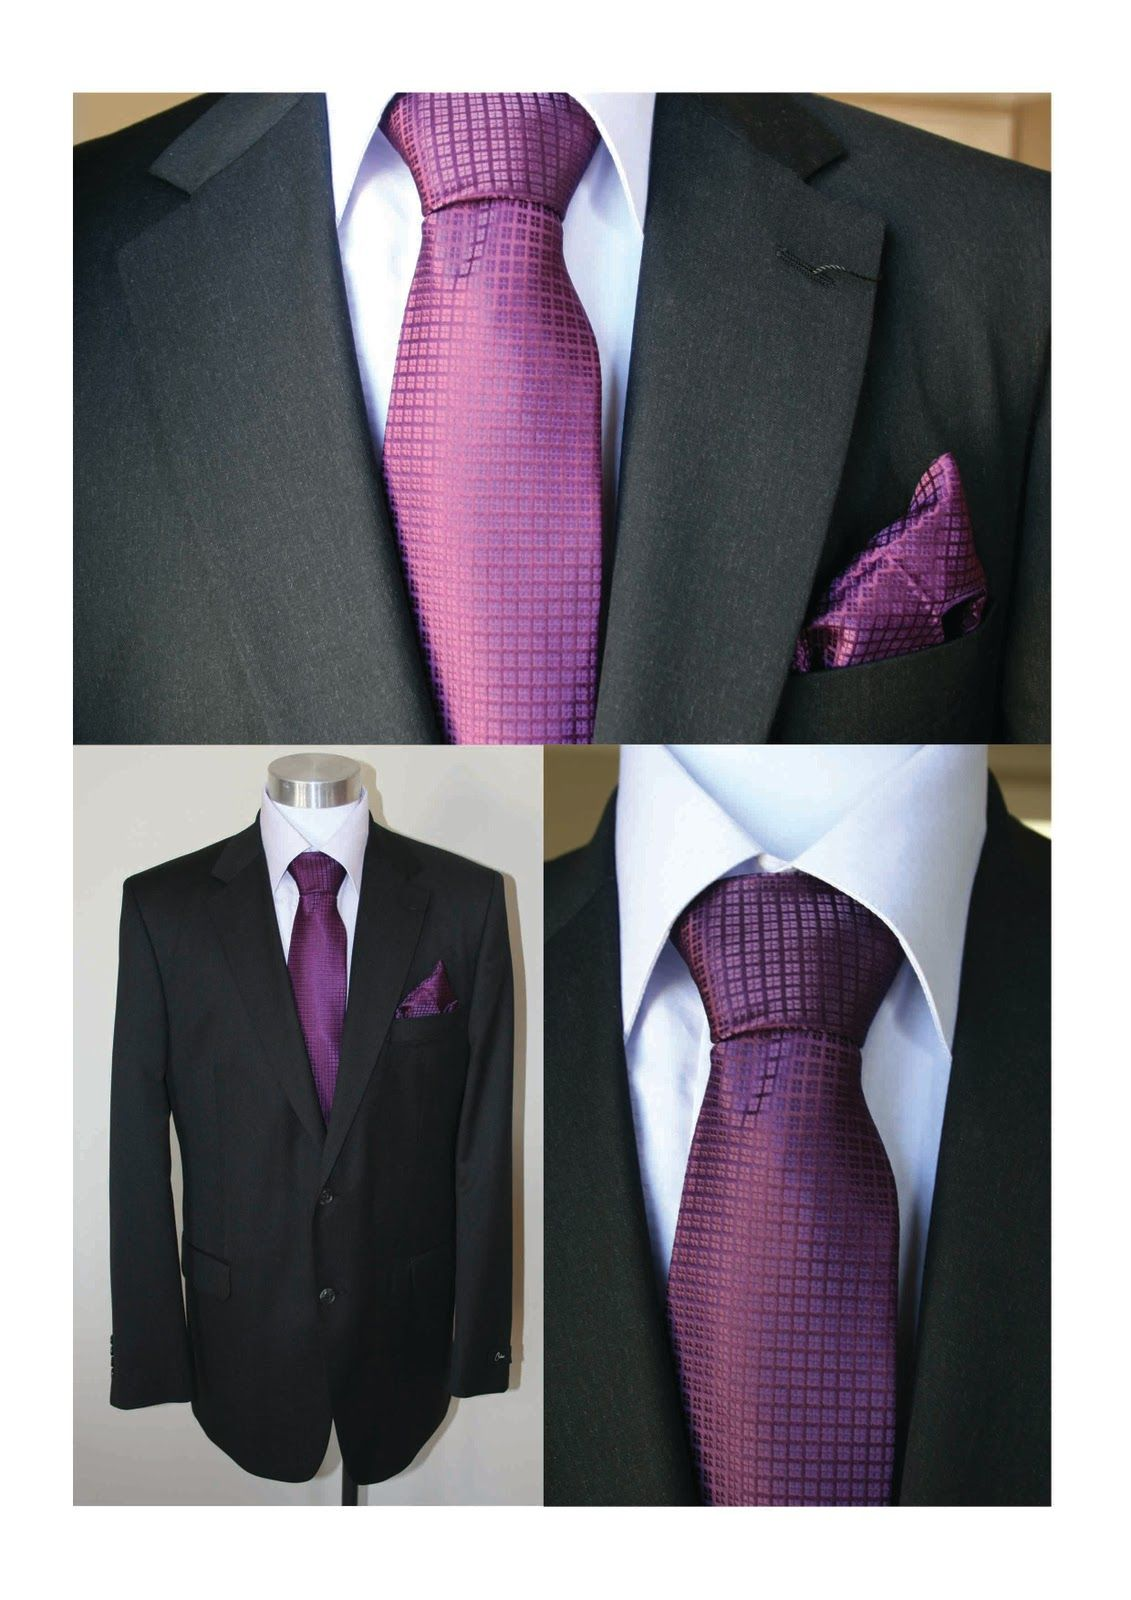 Black suits with purple ties :) | Suit | Pinterest ...